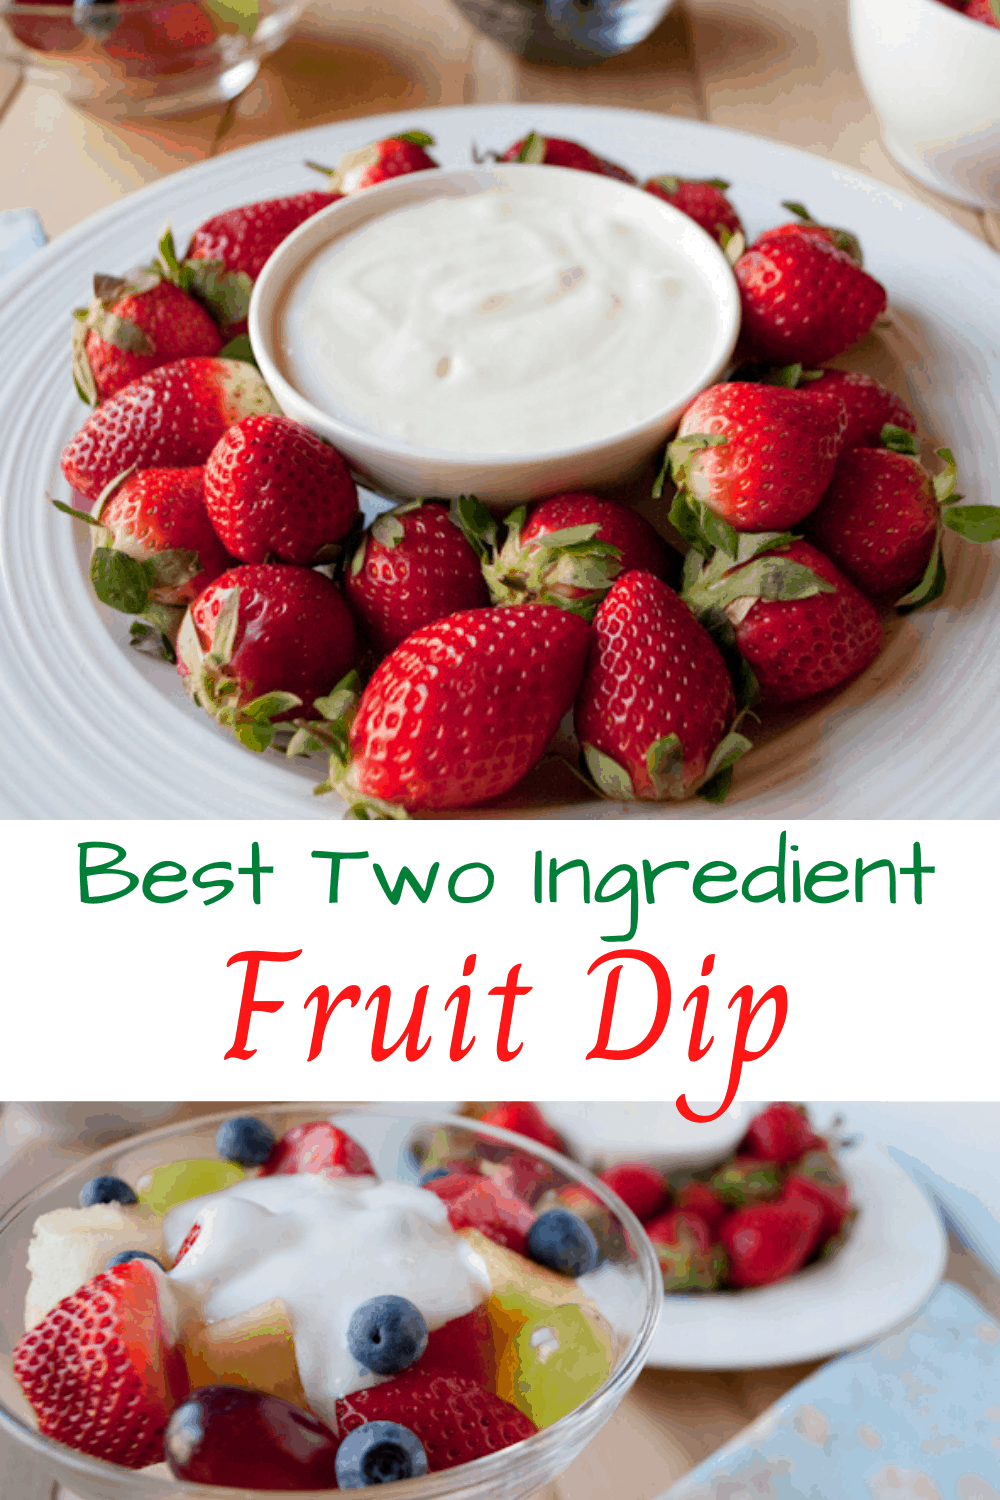 Best Two Ingredient Fruit Dip Savvy Apron Recipe In 2020 Sour Cream Dip Fruit Dip Savory Dessert